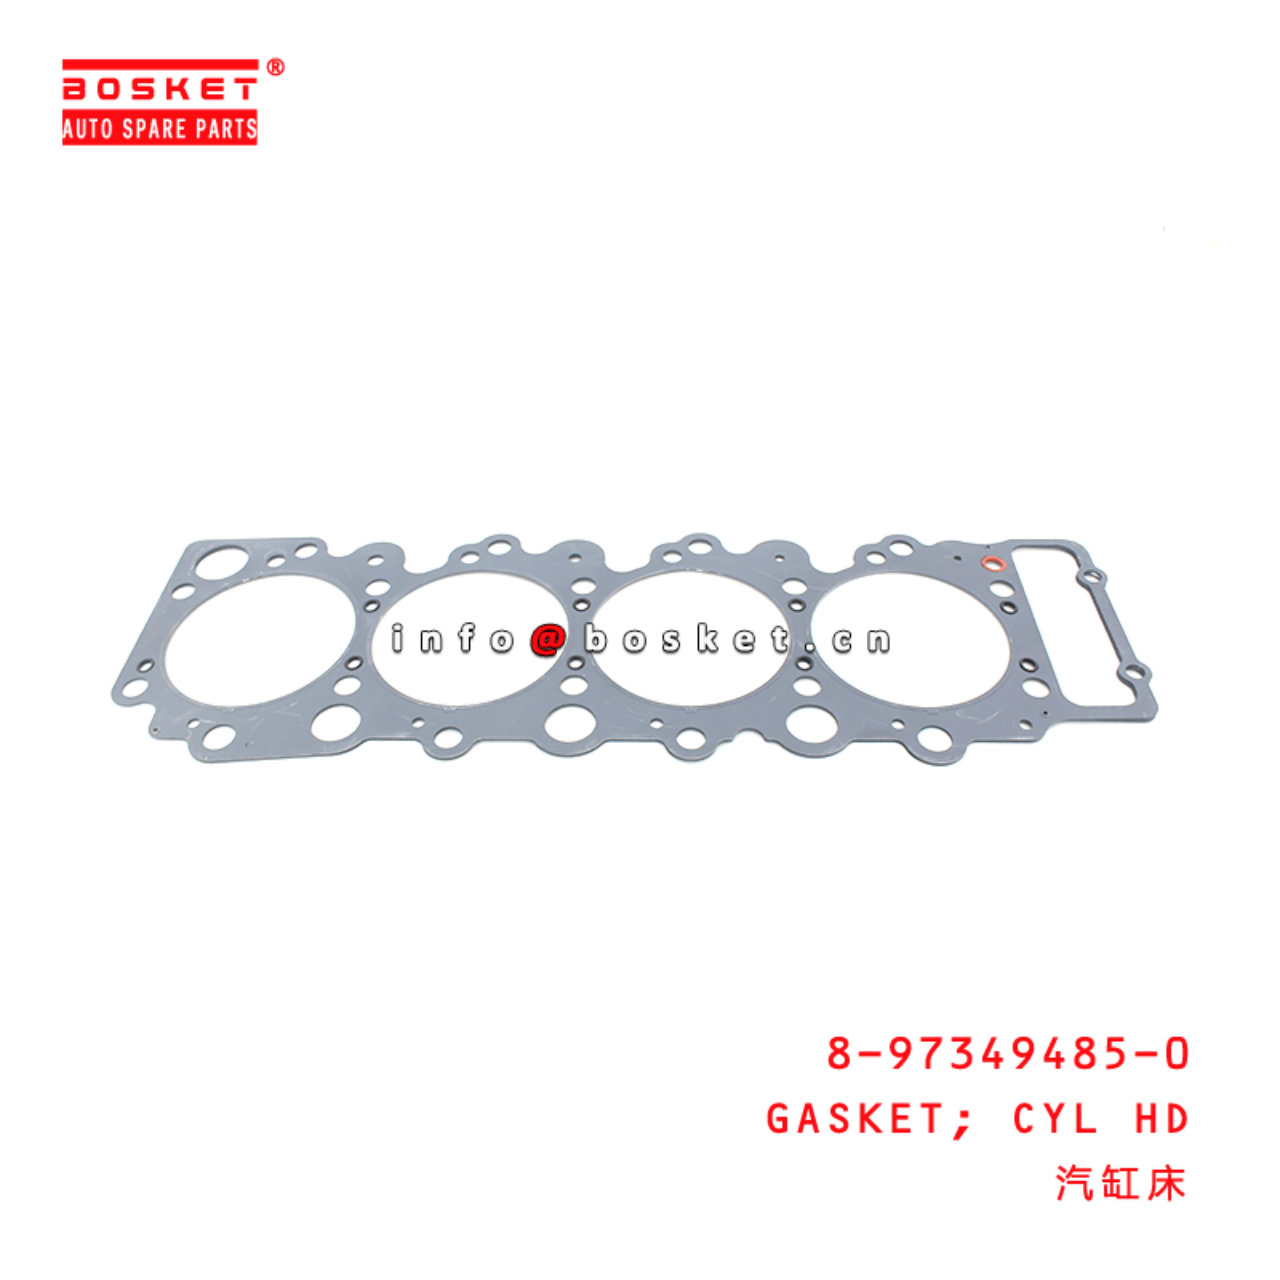 8-97349485-0 Cylinder Head Gasket 8973494850 Suitable for ISUZU NQR66 4HF1